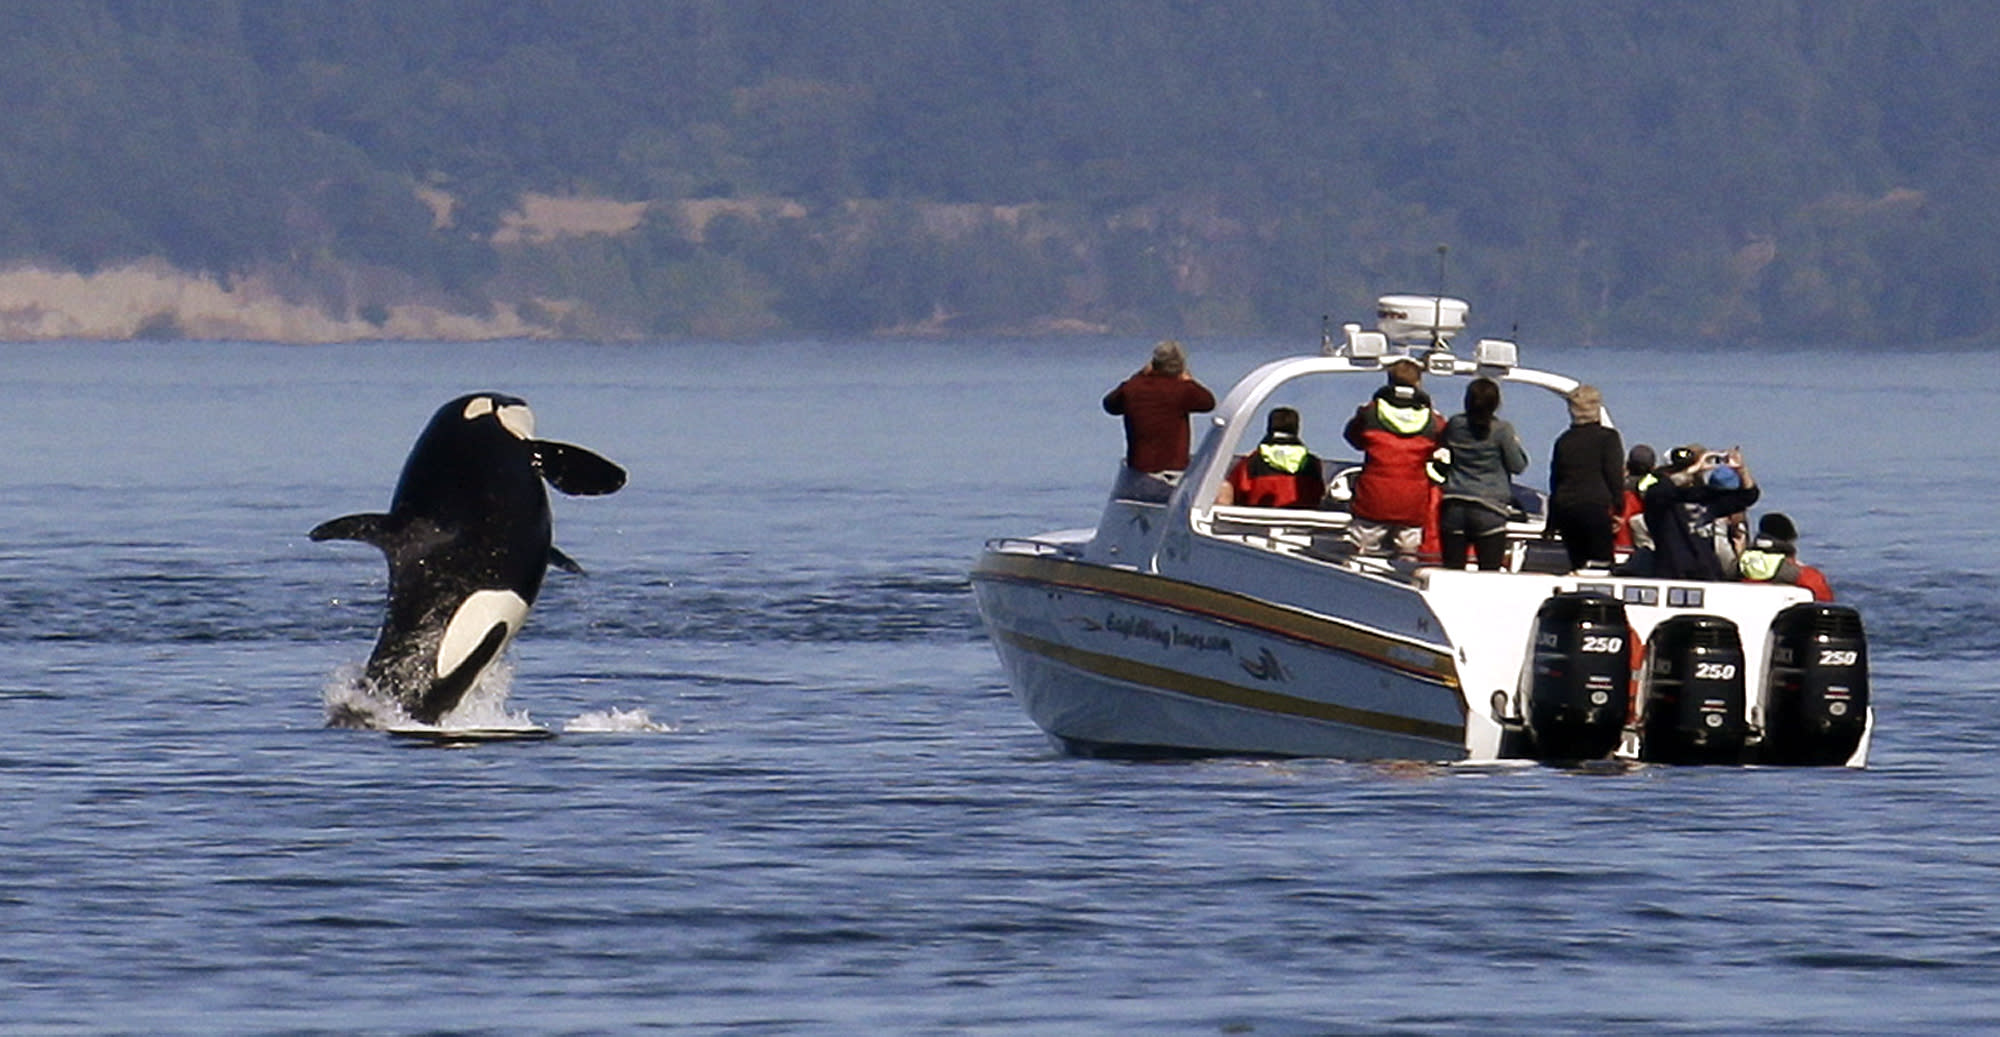 To protect killer whales, patrols keep boaters in check